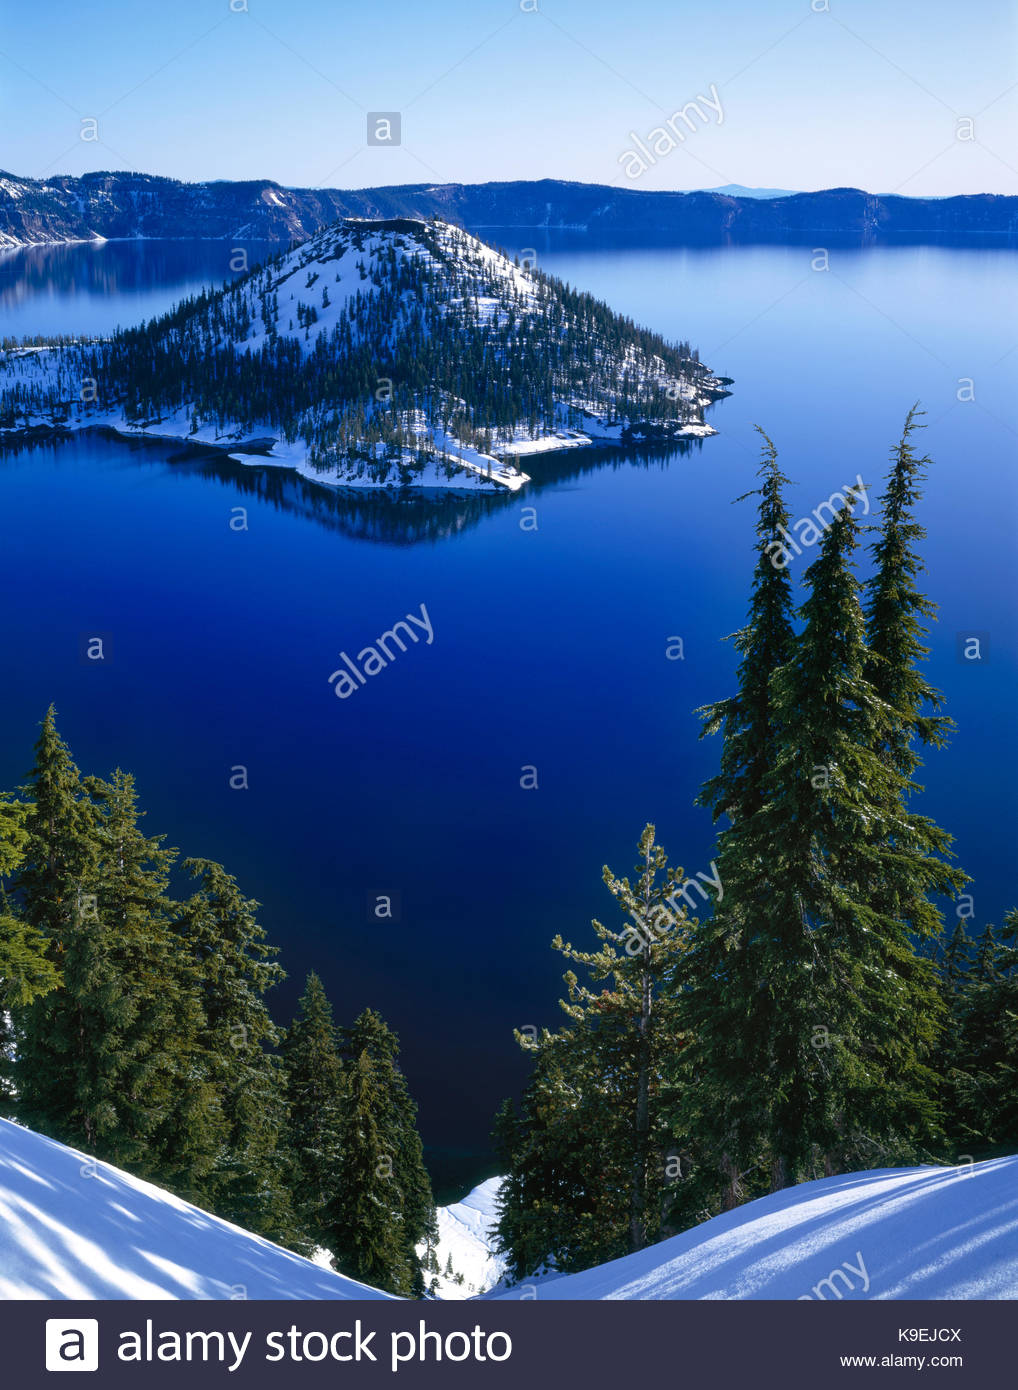 Wizard Island in Winter, Crater Lake National Park, Oregon - Stock Image